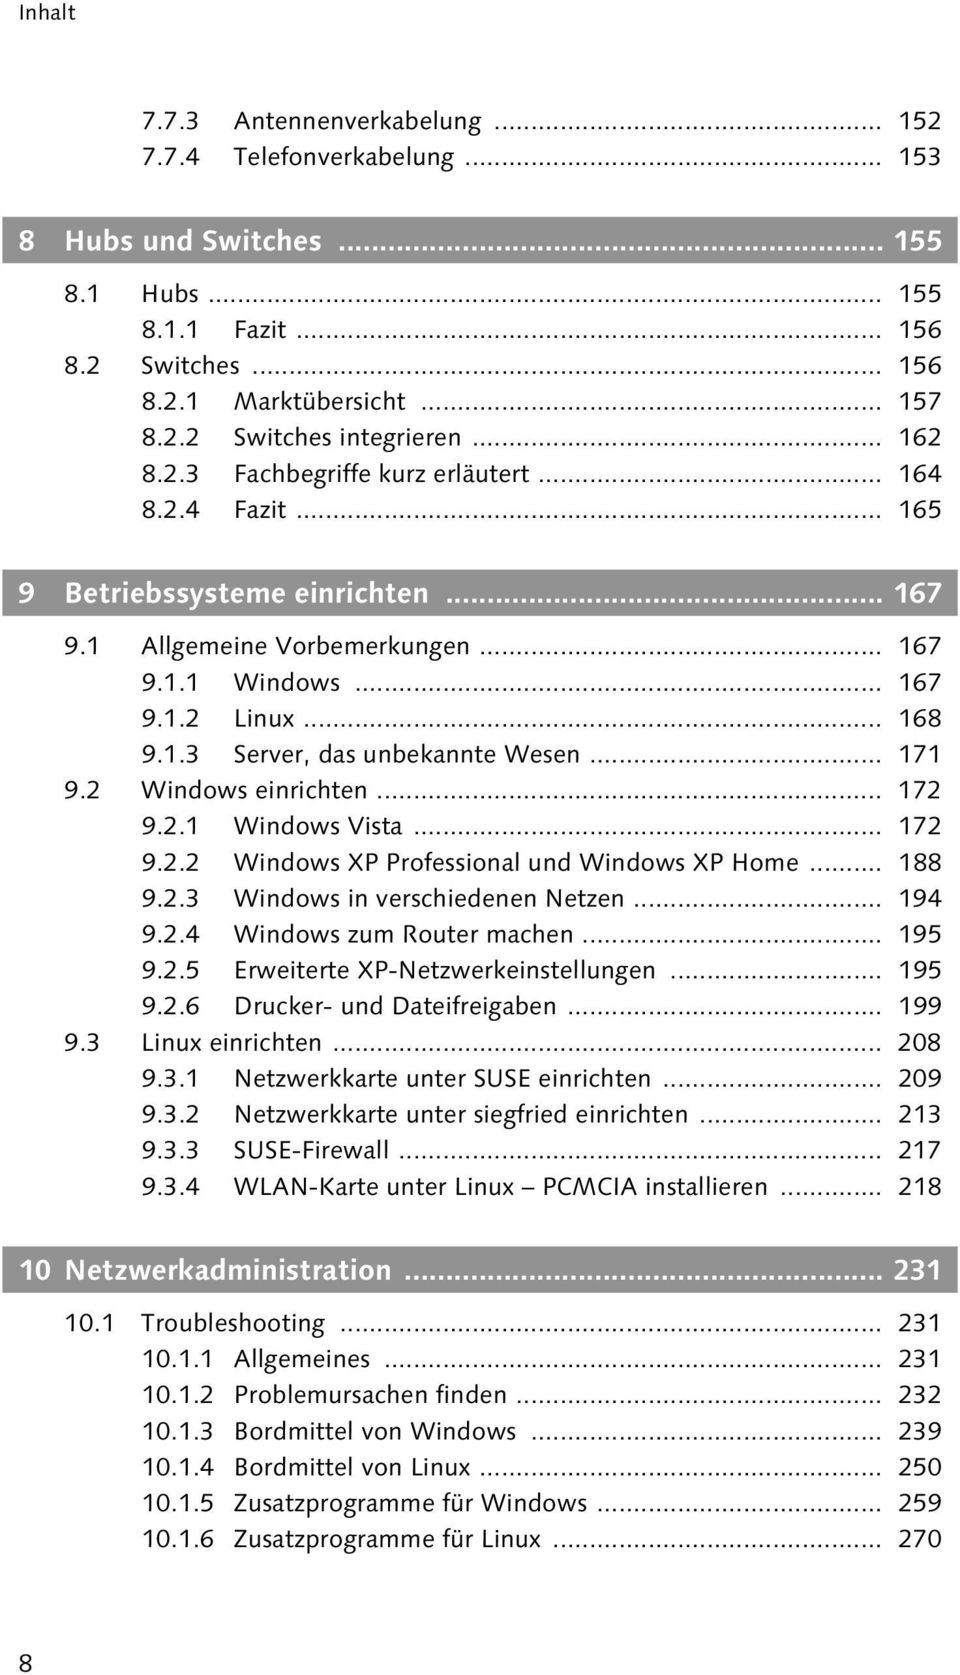 .. 171 9.2 Windows einrichten... 172 9.2.1 Windows Vista... 172 9.2.2 Windows XP Professional und Windows XP Home... 188 9.2.3 Windows in verschiedenen Netzen... 194 9.2.4 Windows zum Router machen.